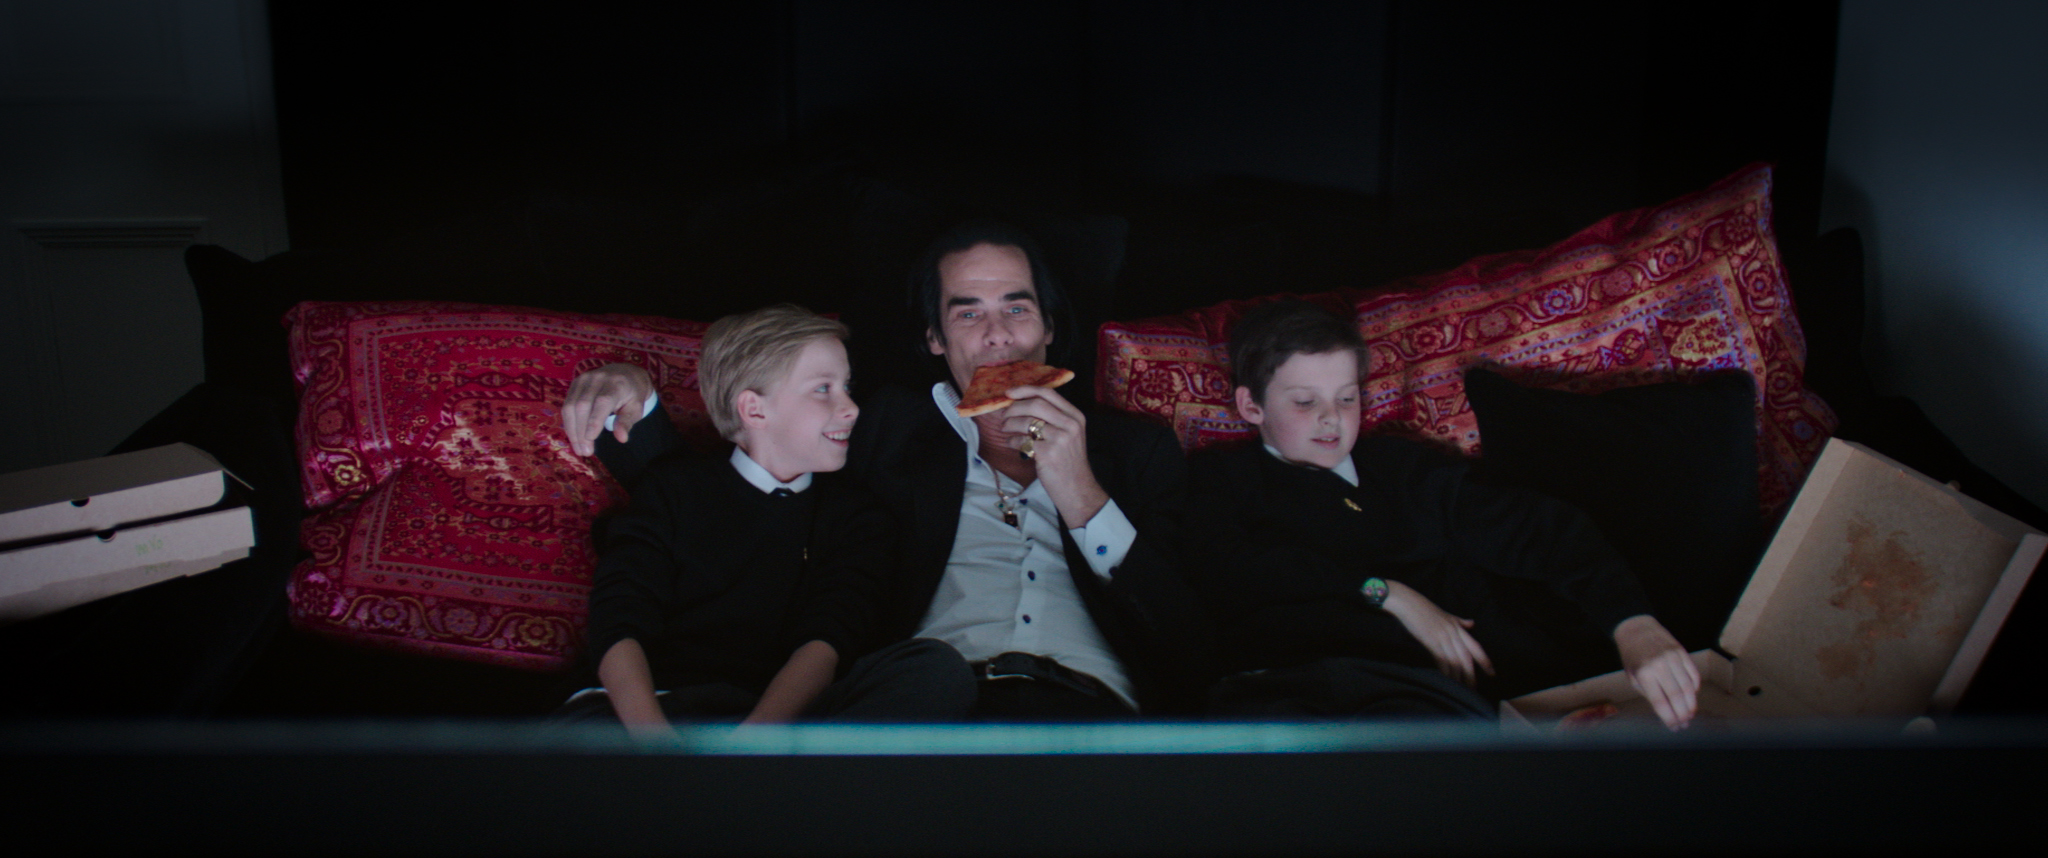 Nick Cave, Earl Cave, and Arthur Cave in 20,000 Days on Earth (2014)